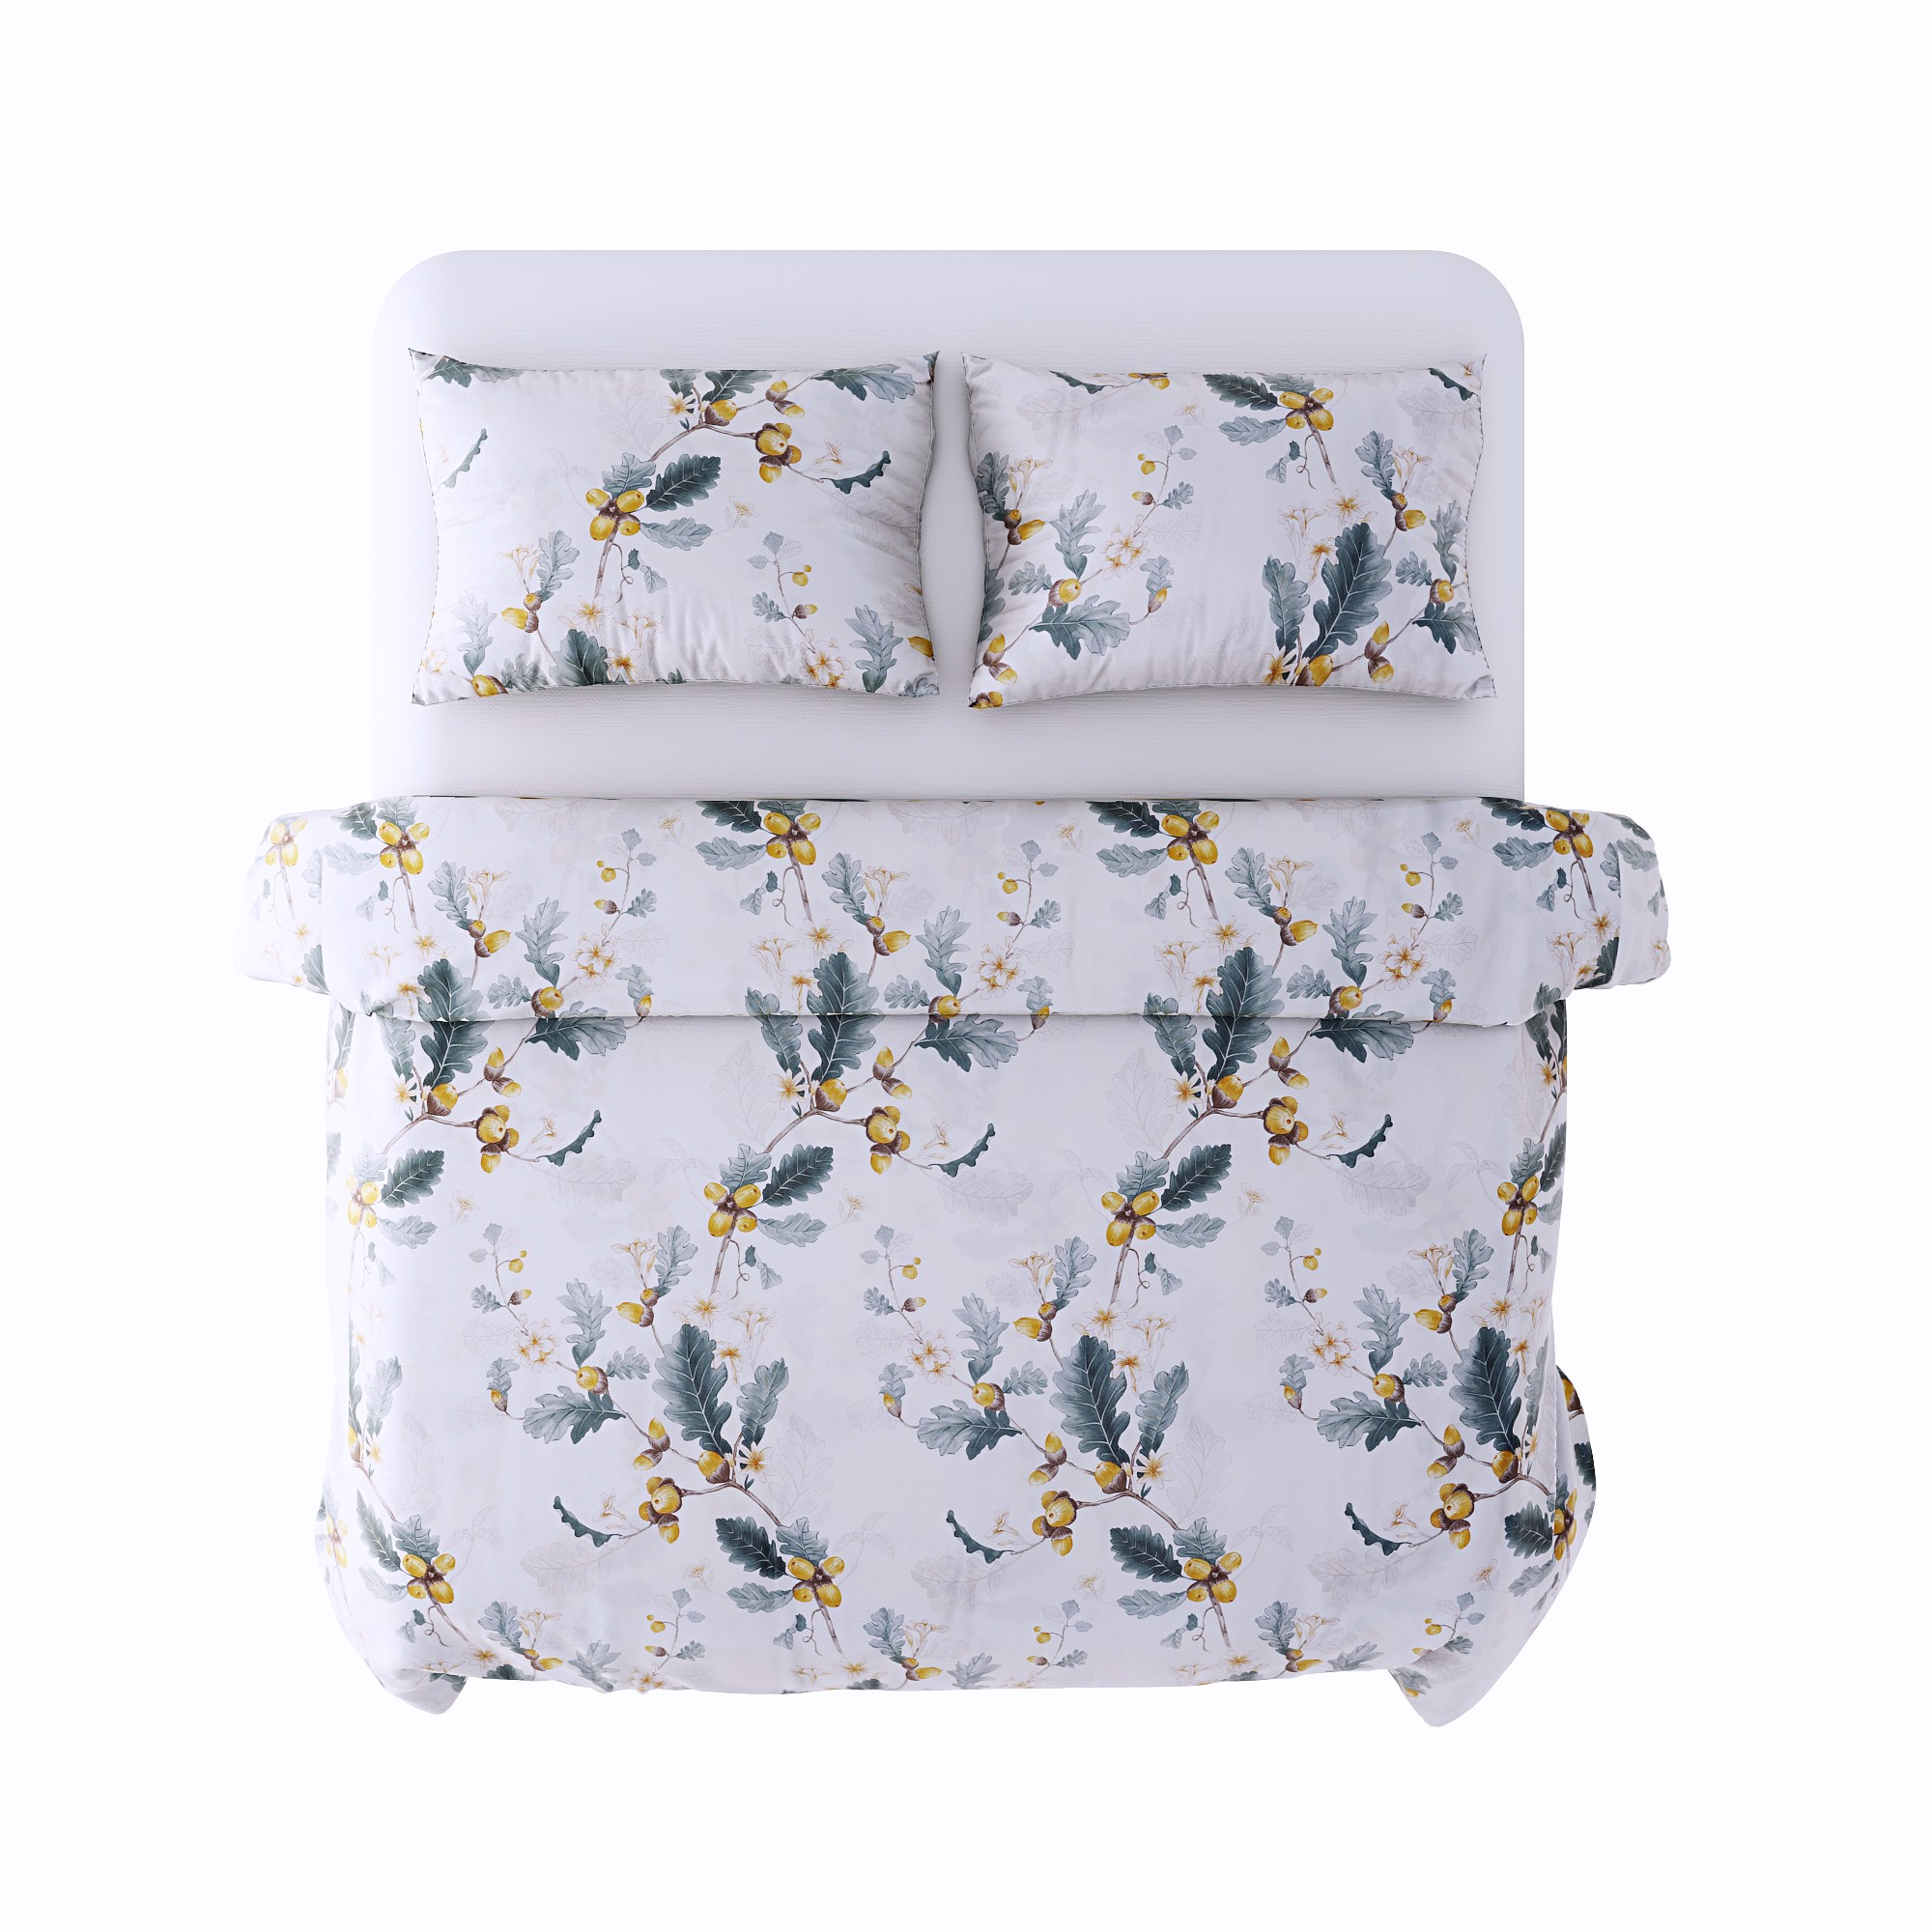 Best price 227 Tencel Daffodils garden